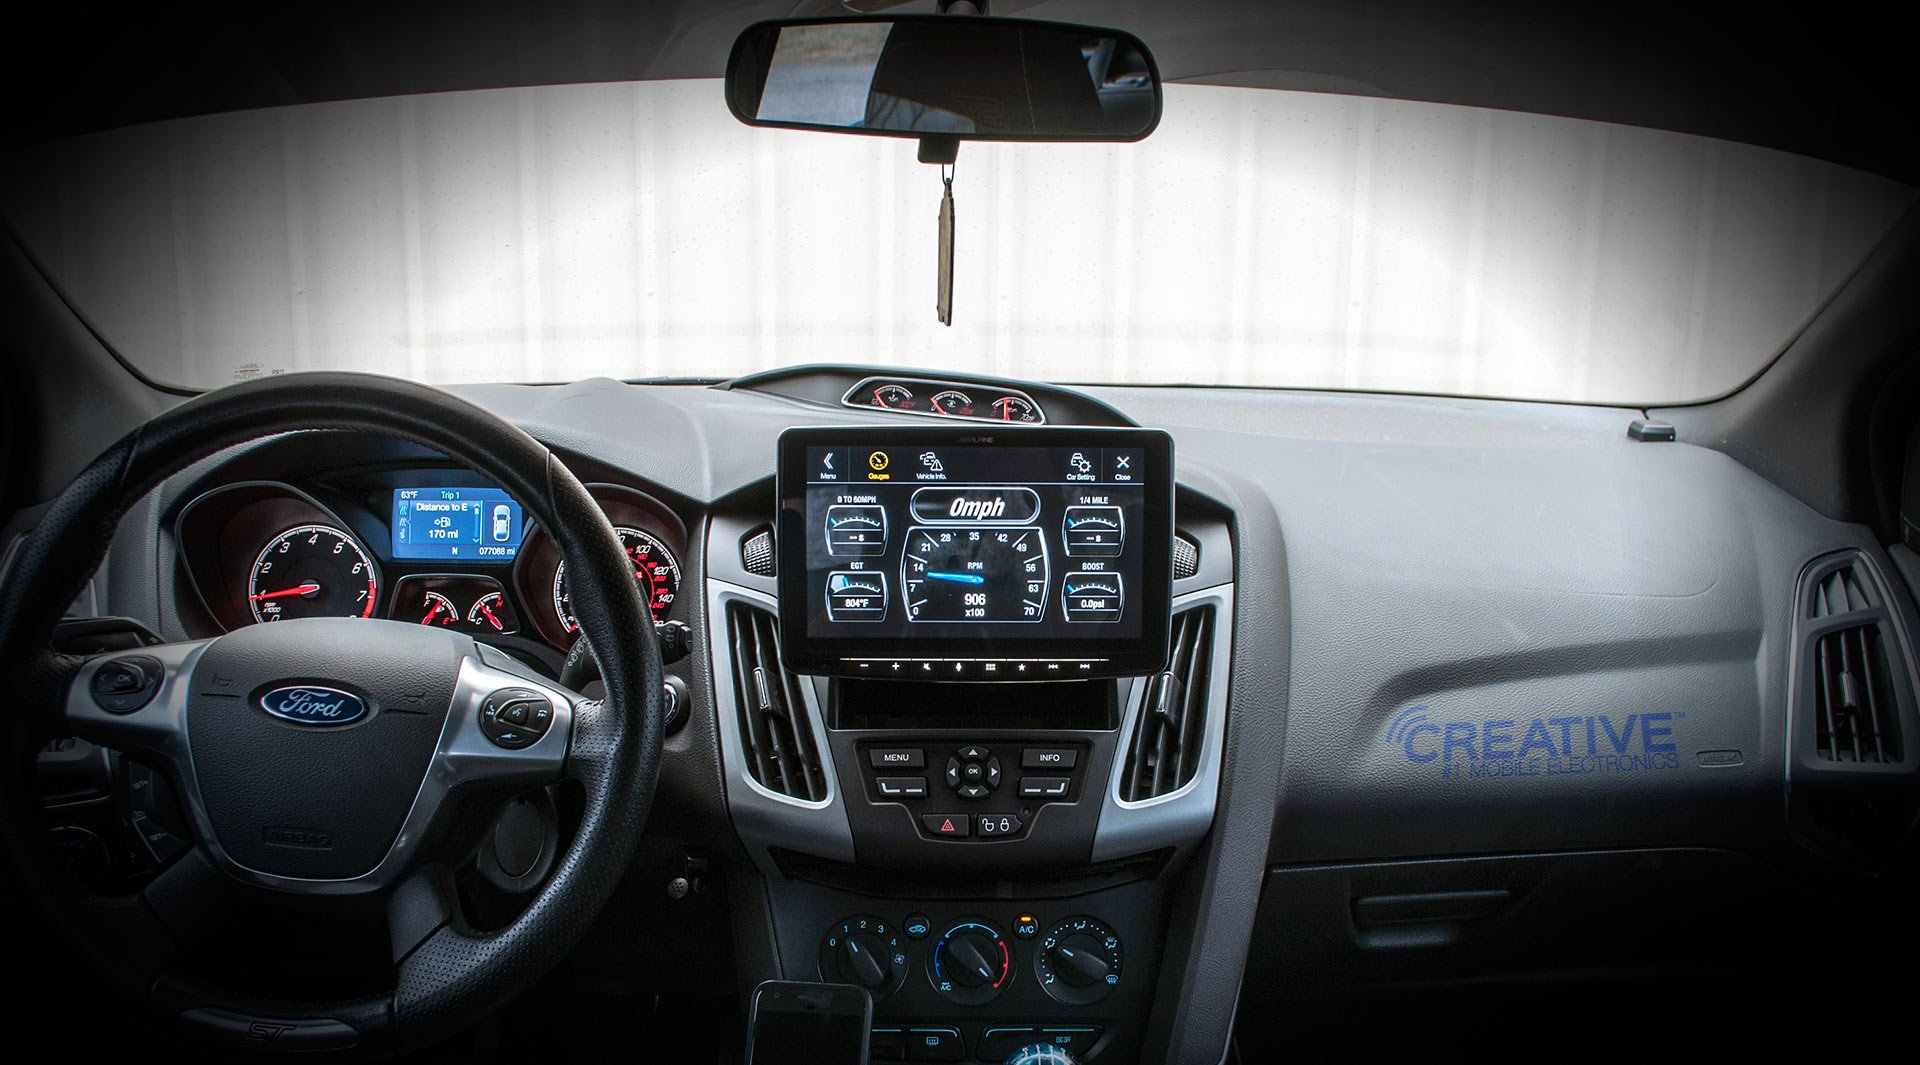 Alpine iLX-F309 HALO9 9'' AM/FM/audio/video Receiver w/ 9-inch Touch Screen and Mech-less Design - Single-DIN Mounting by Alpine (Image #4)